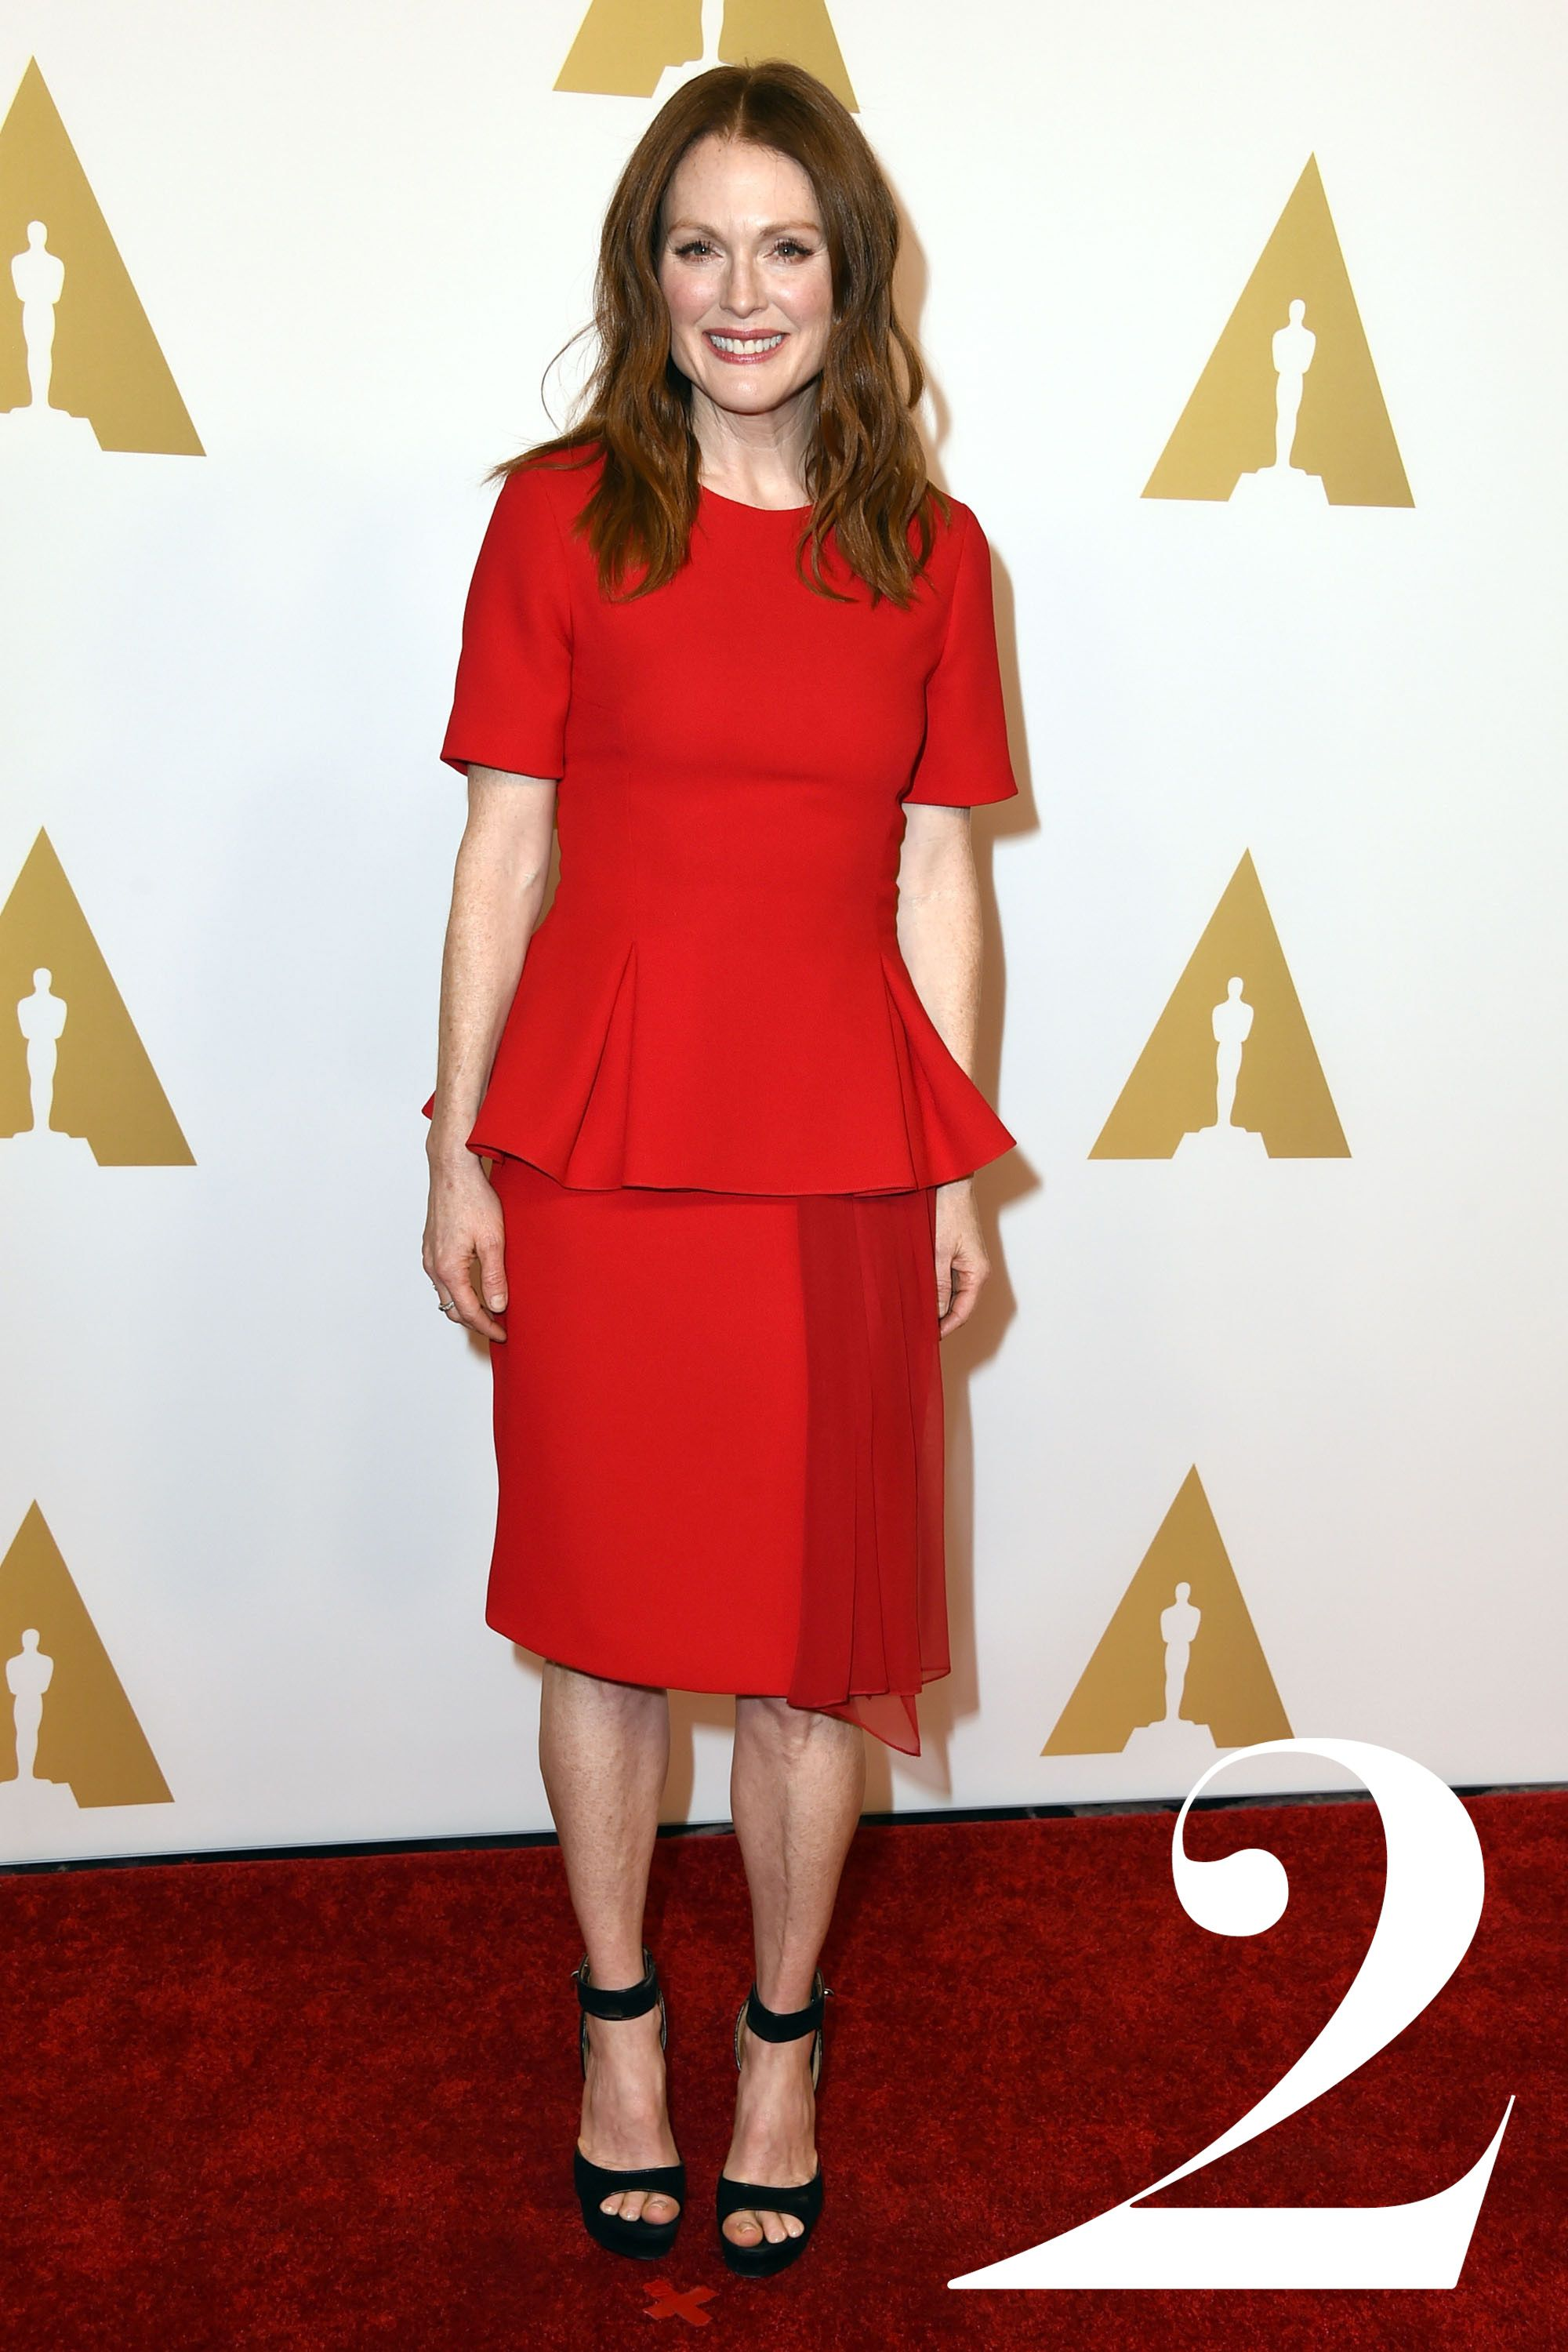 <strong>What: </strong>Prabal Gurung  <strong>Where:</strong> The Academy's Annual Nominee Luncheon  <strong>Why:</strong> The Best Actress nominee looks bold yet sophisticated in a monochrome set and platform heels.